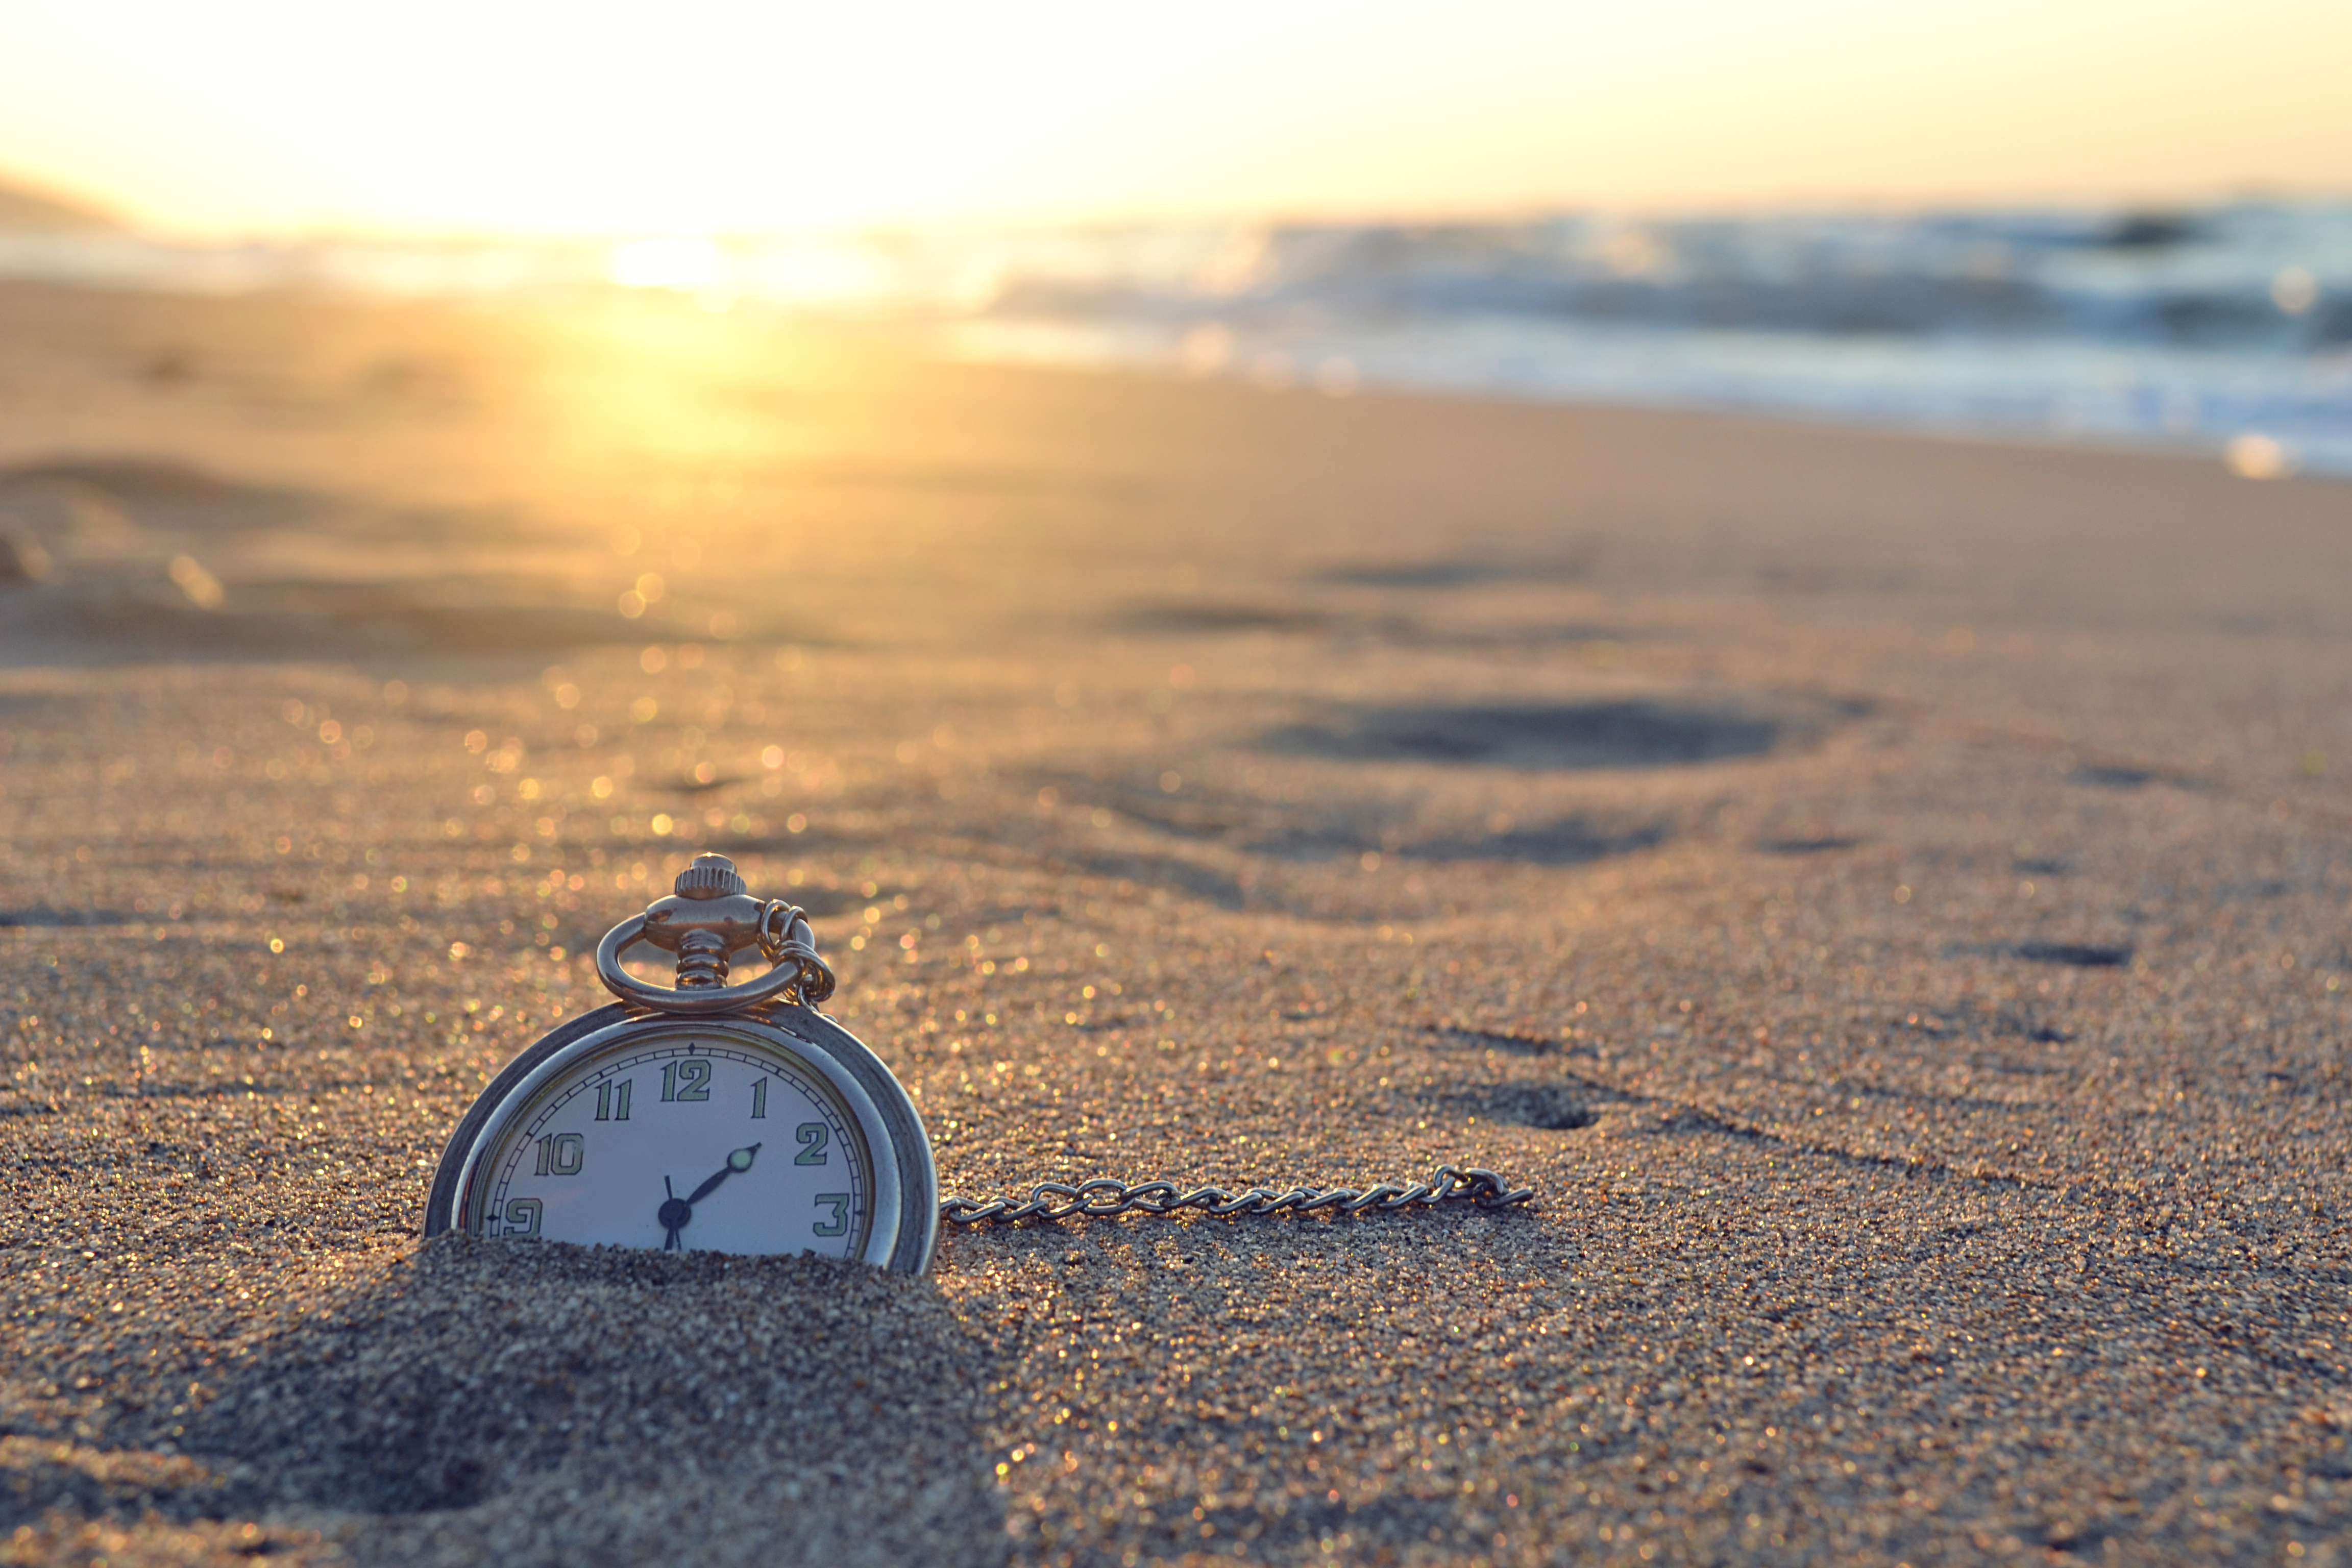 Time, Beach, Clock, Lost, Old, HQ Photo